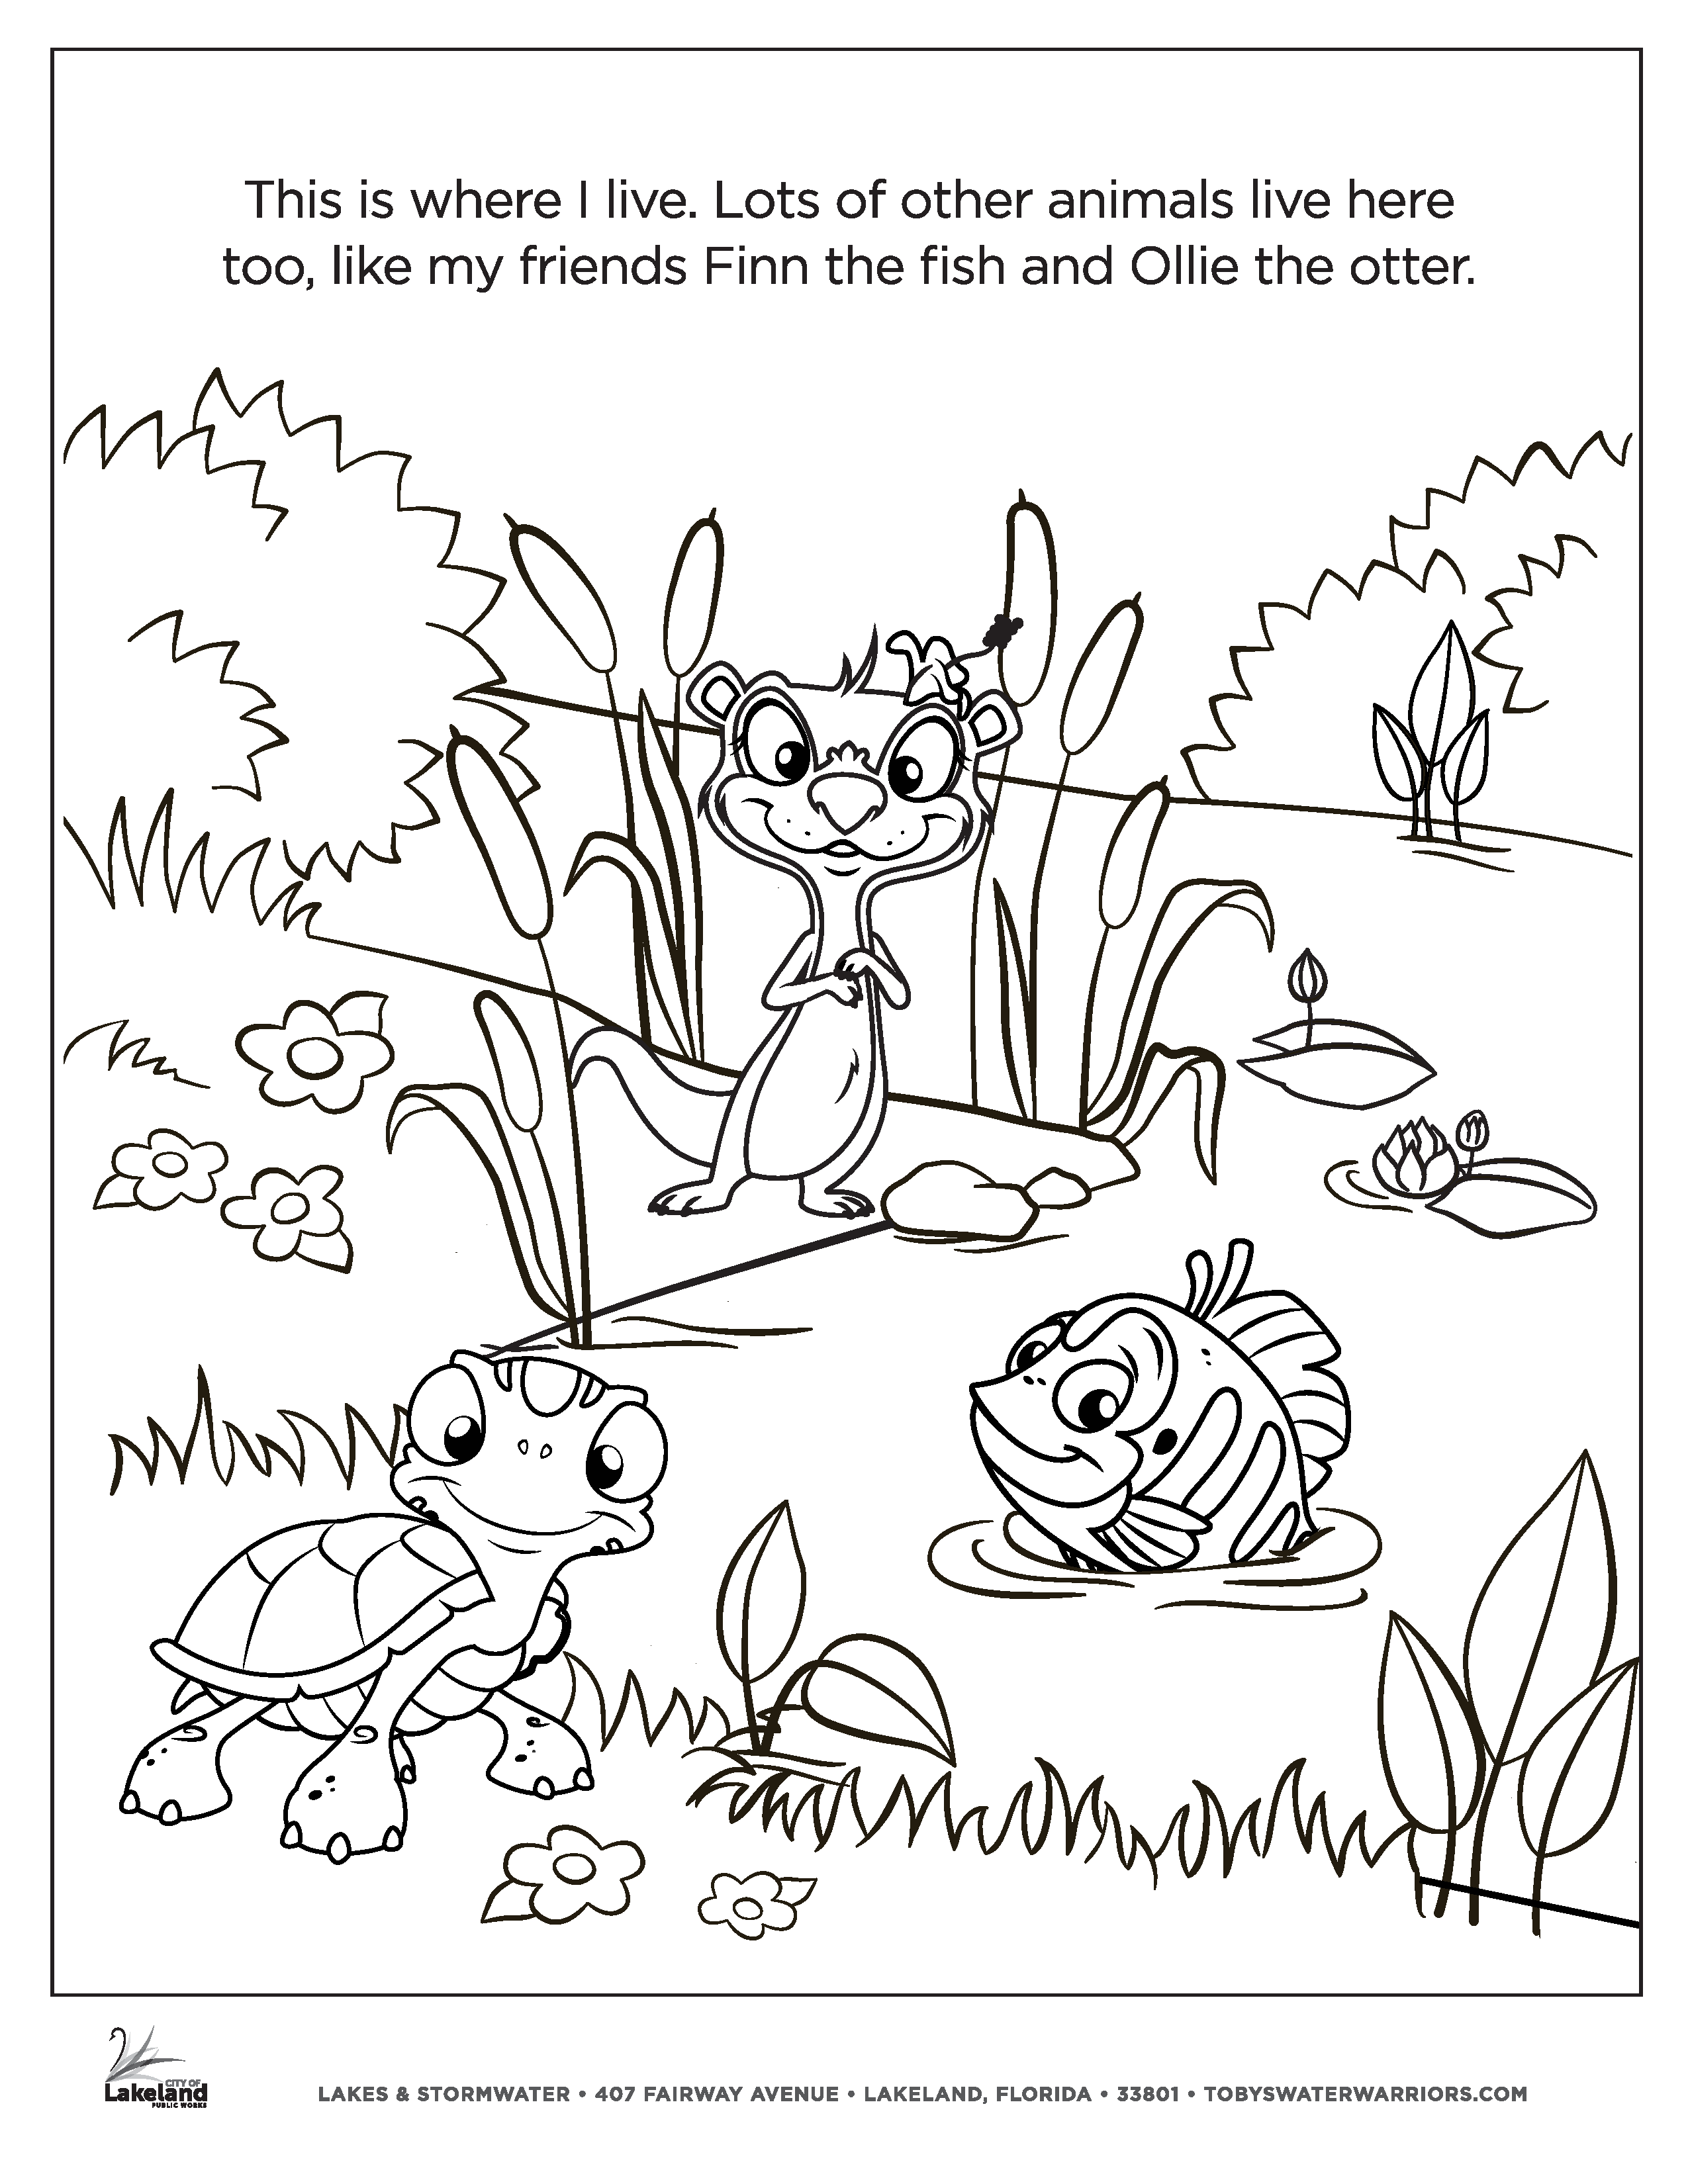 Toby's Water Warriors Coloring Page 3